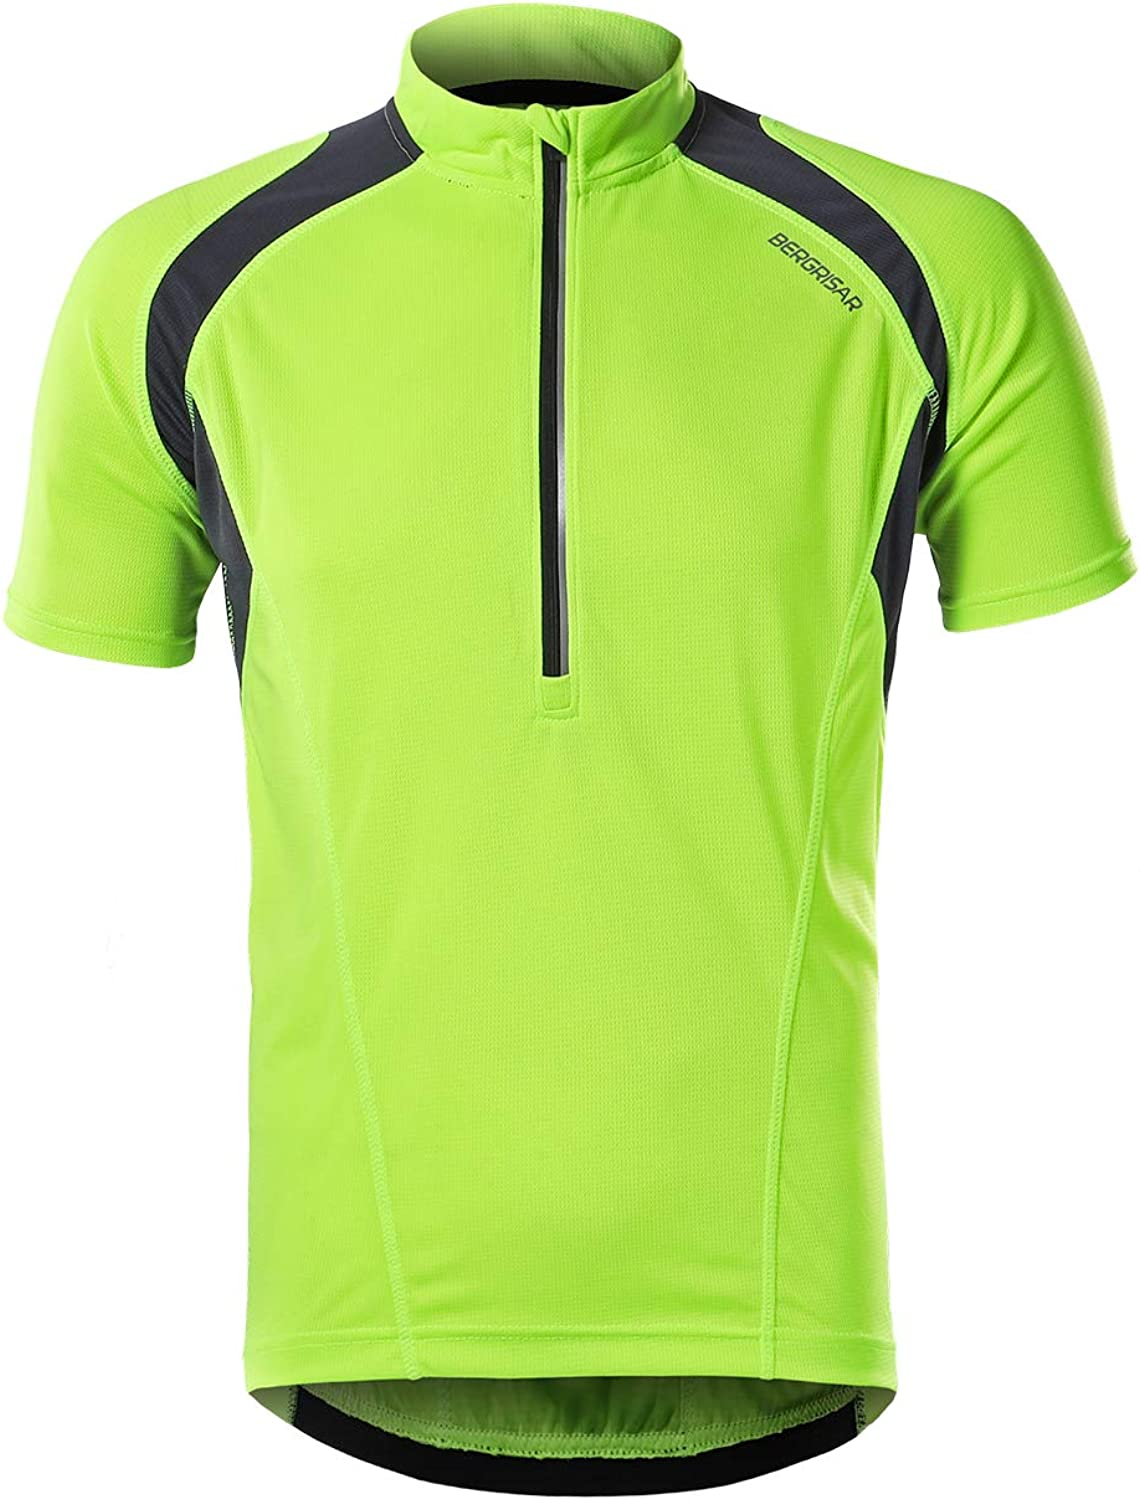 BERGRISAR Mens Half Zipper Cycling Jersey Short Sleeves Bike Bicycle Shirts with Zipper Pocket Quick-Dry Breathable BG060